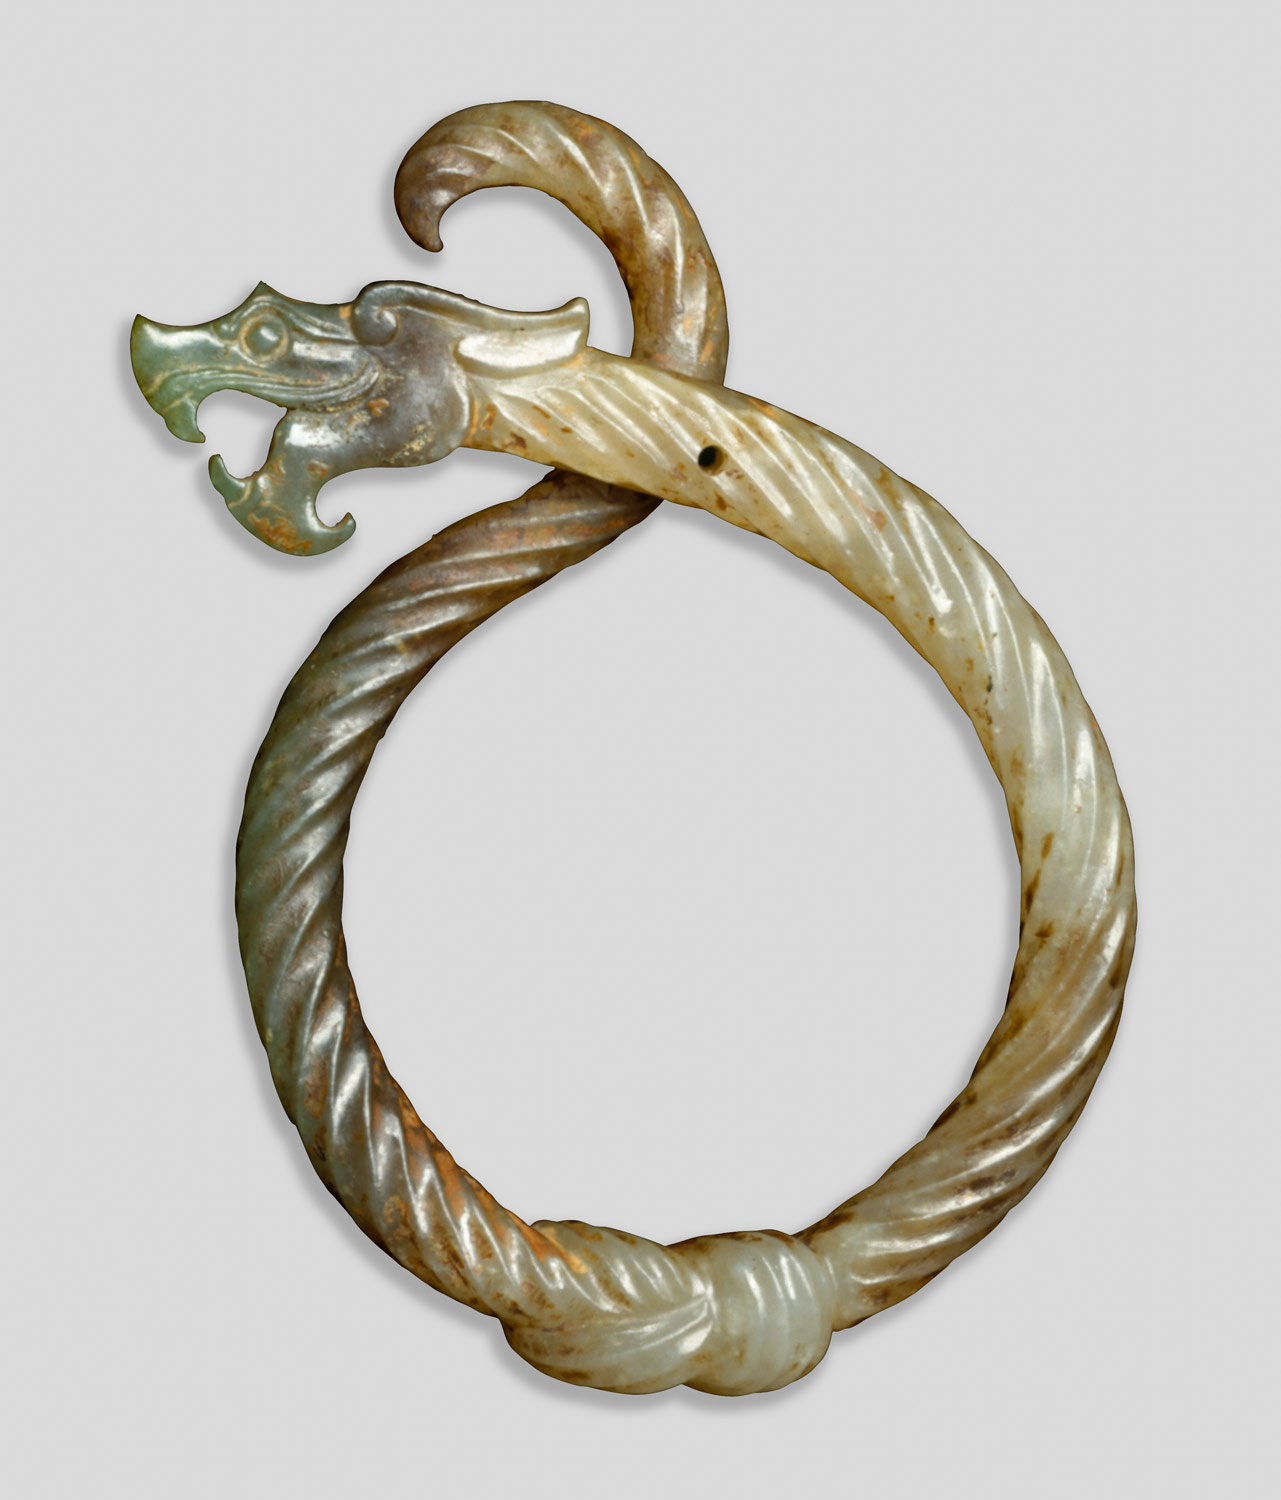 knotted dragon jewellery